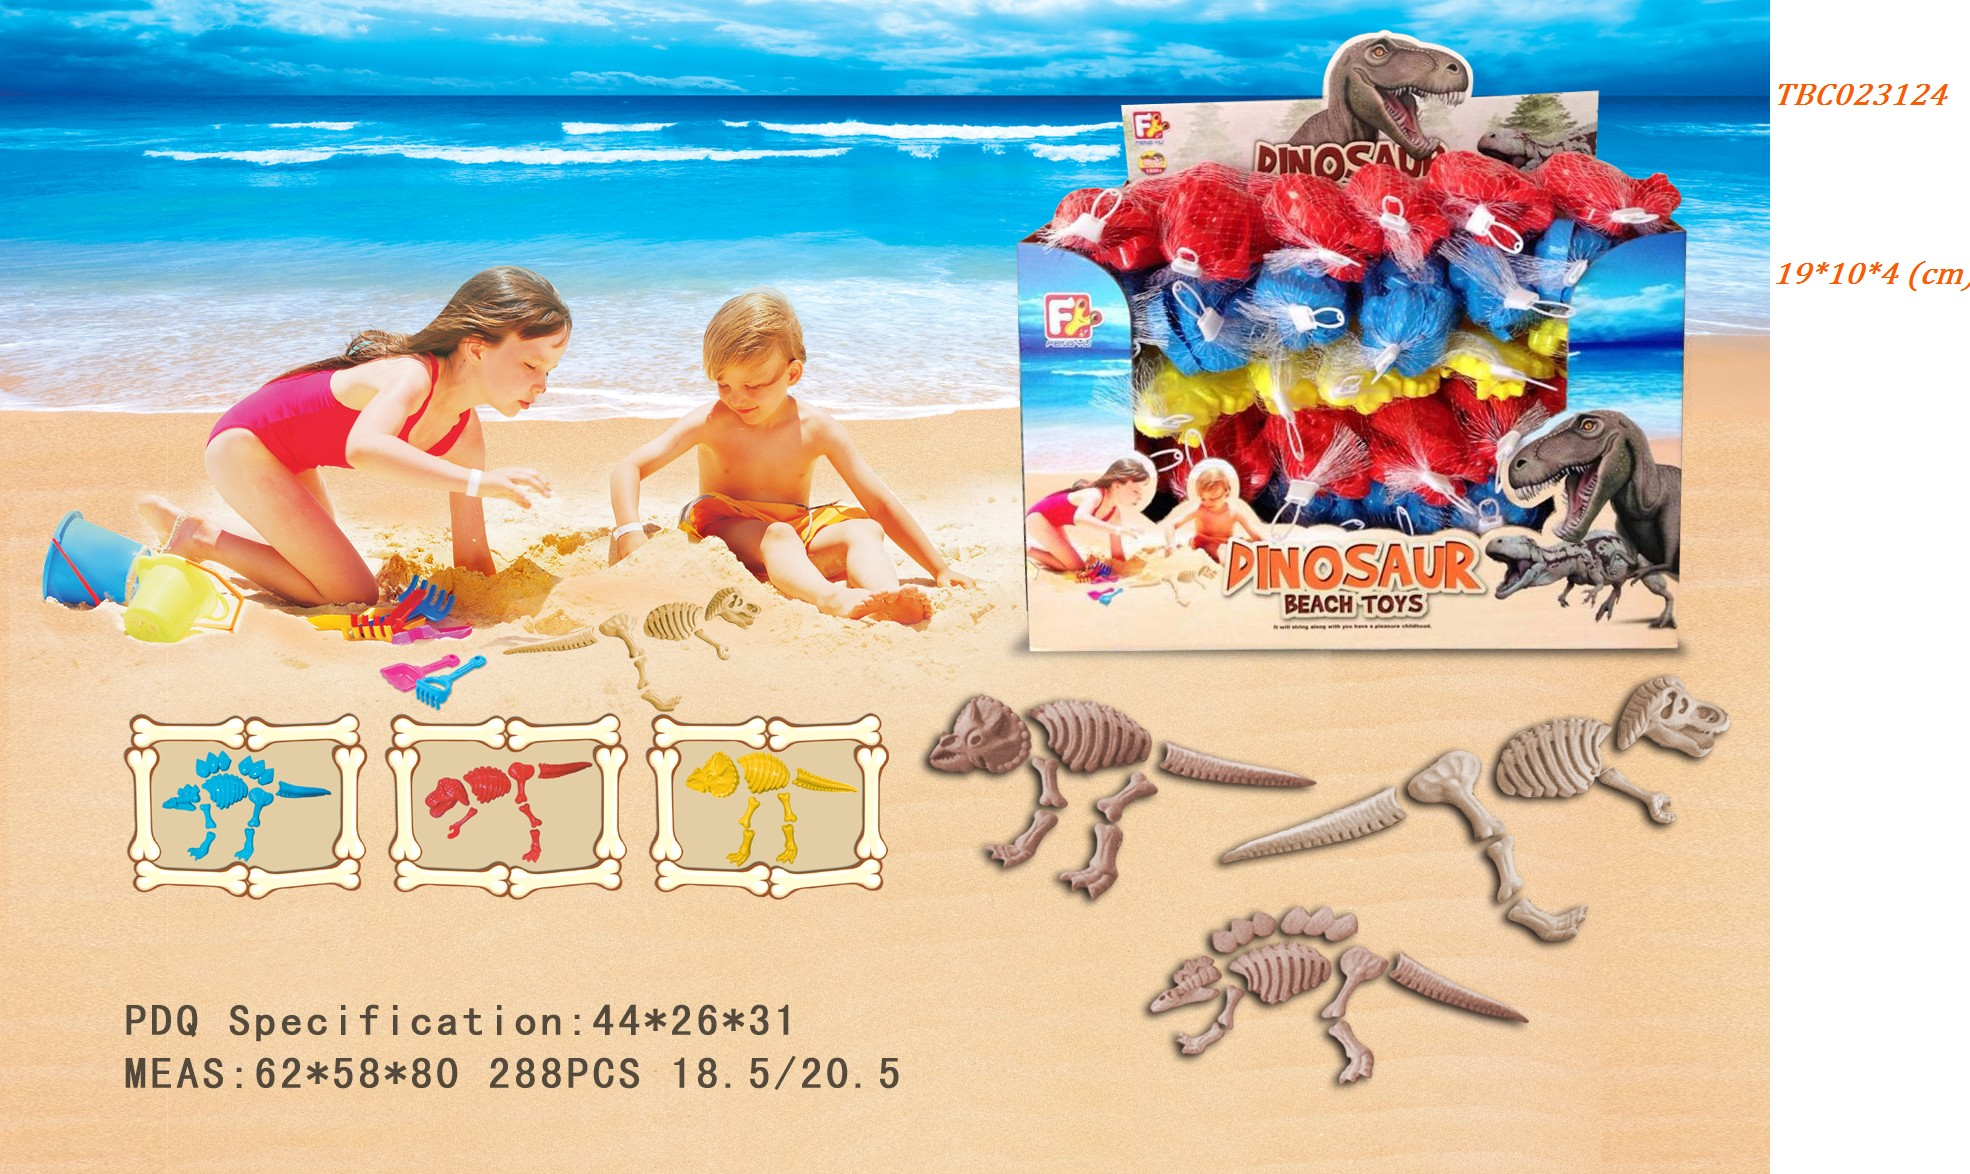 Dinosaur Sand Model beach toy set